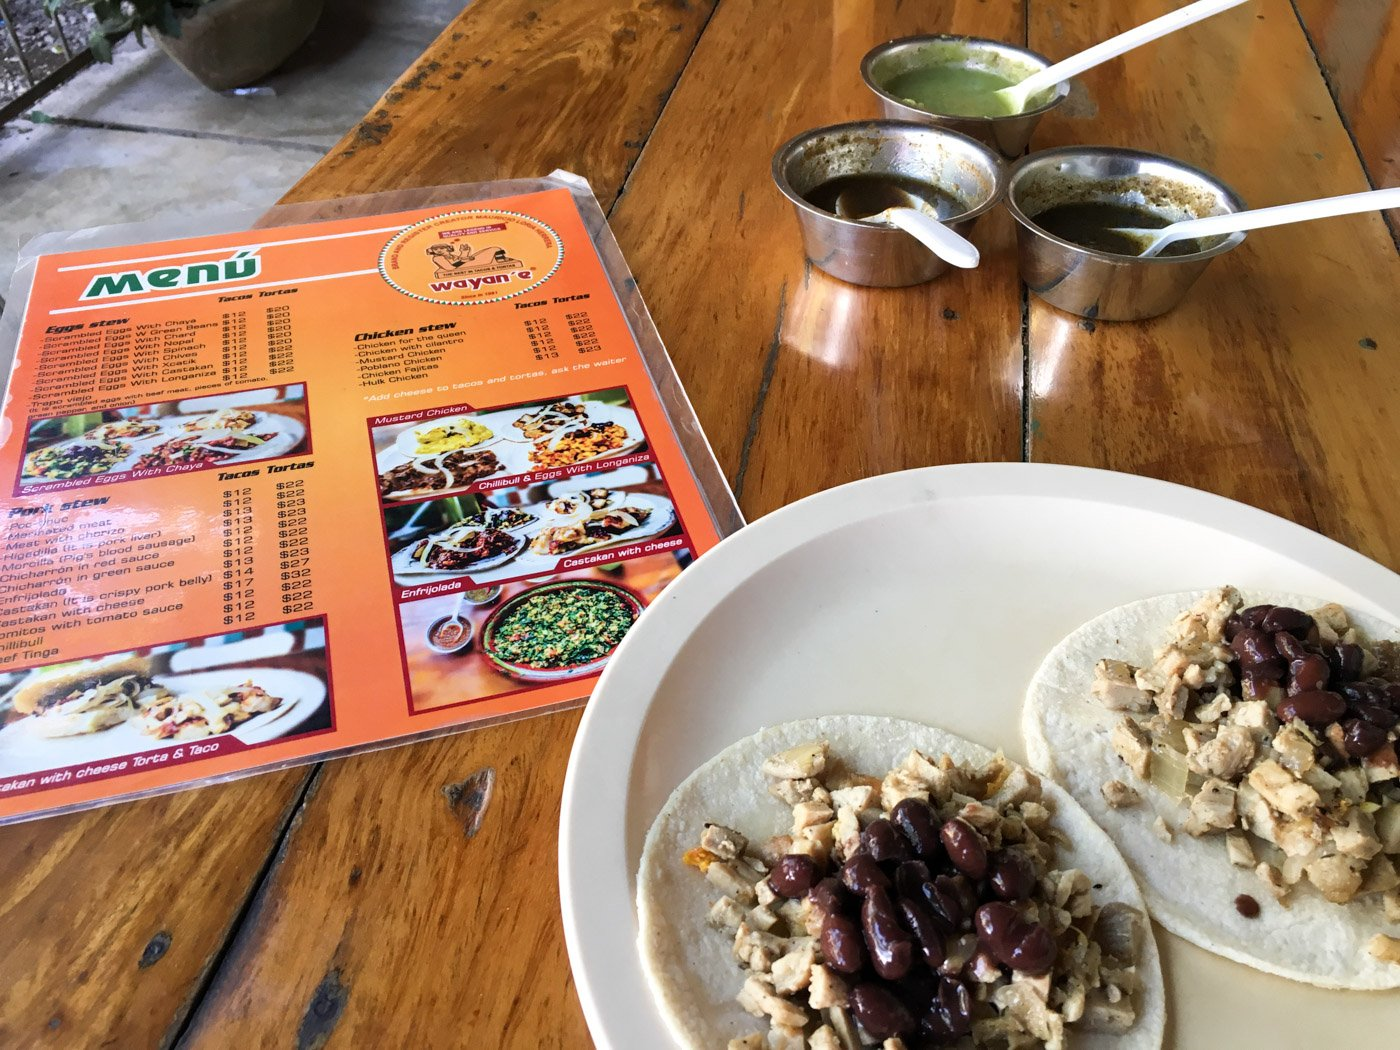 Wayan'e has some of the best tacos in Merida!